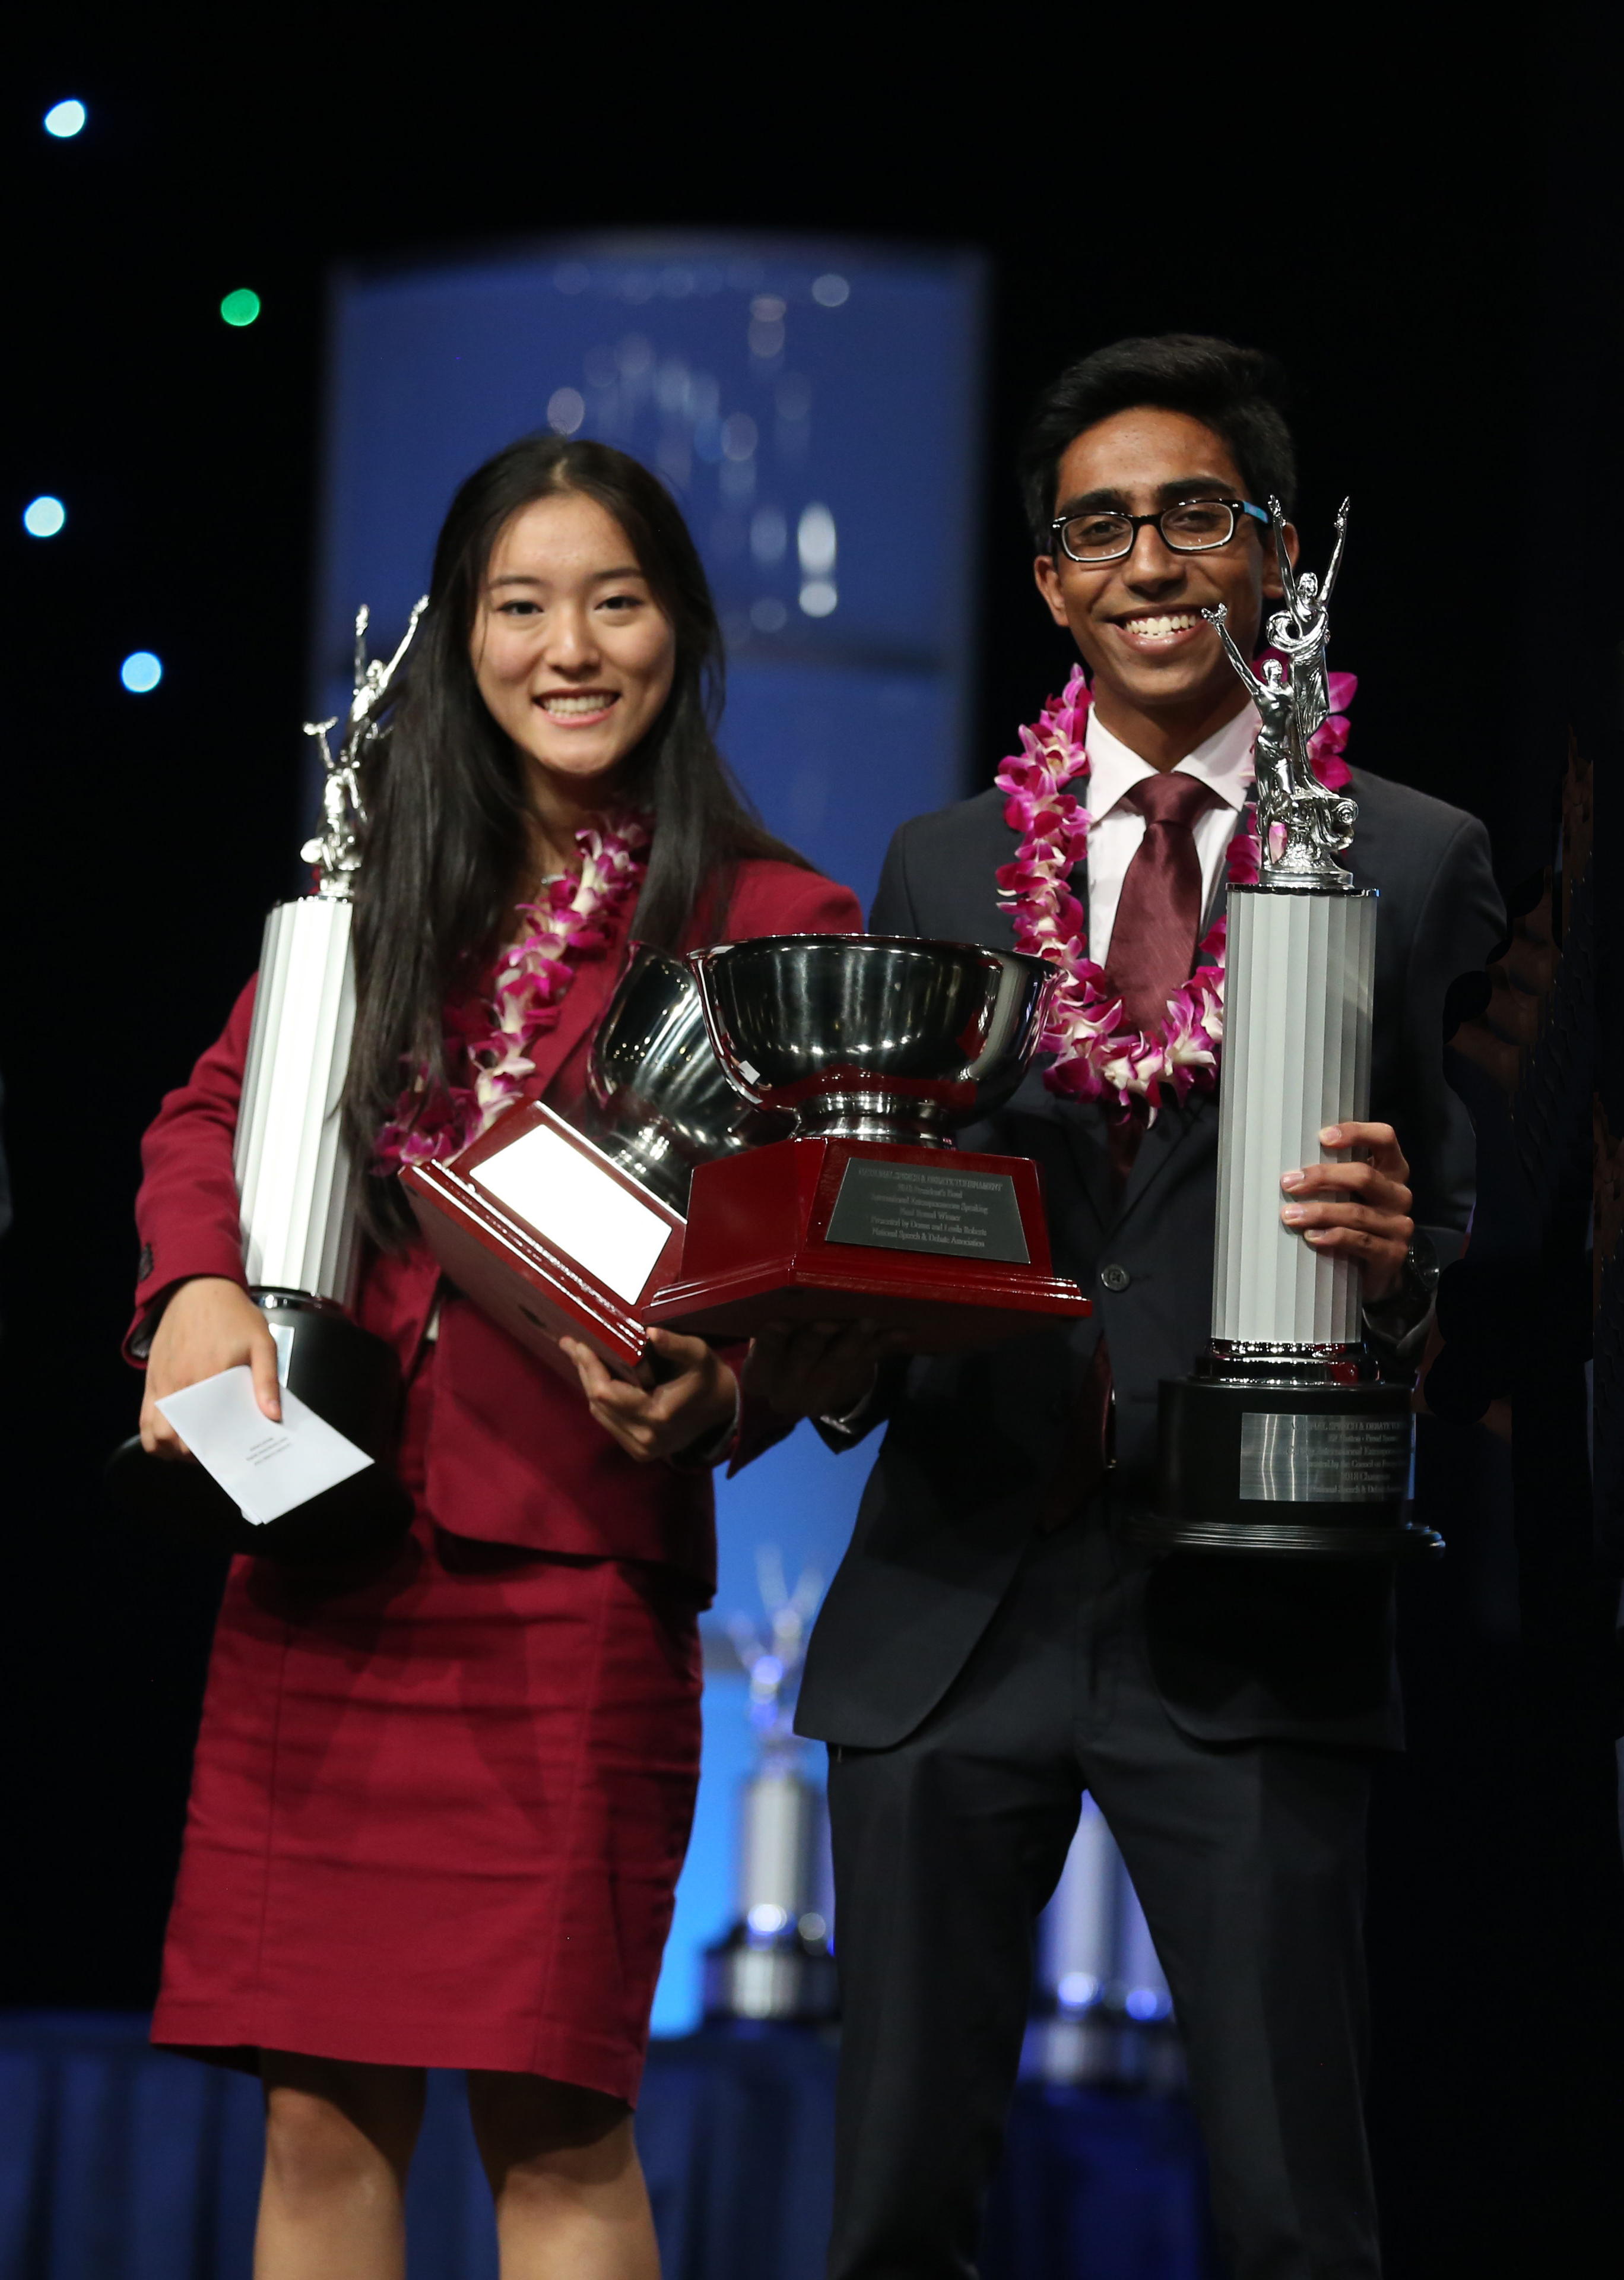 Jacqueline Wei & Uzair Alpial National Champs